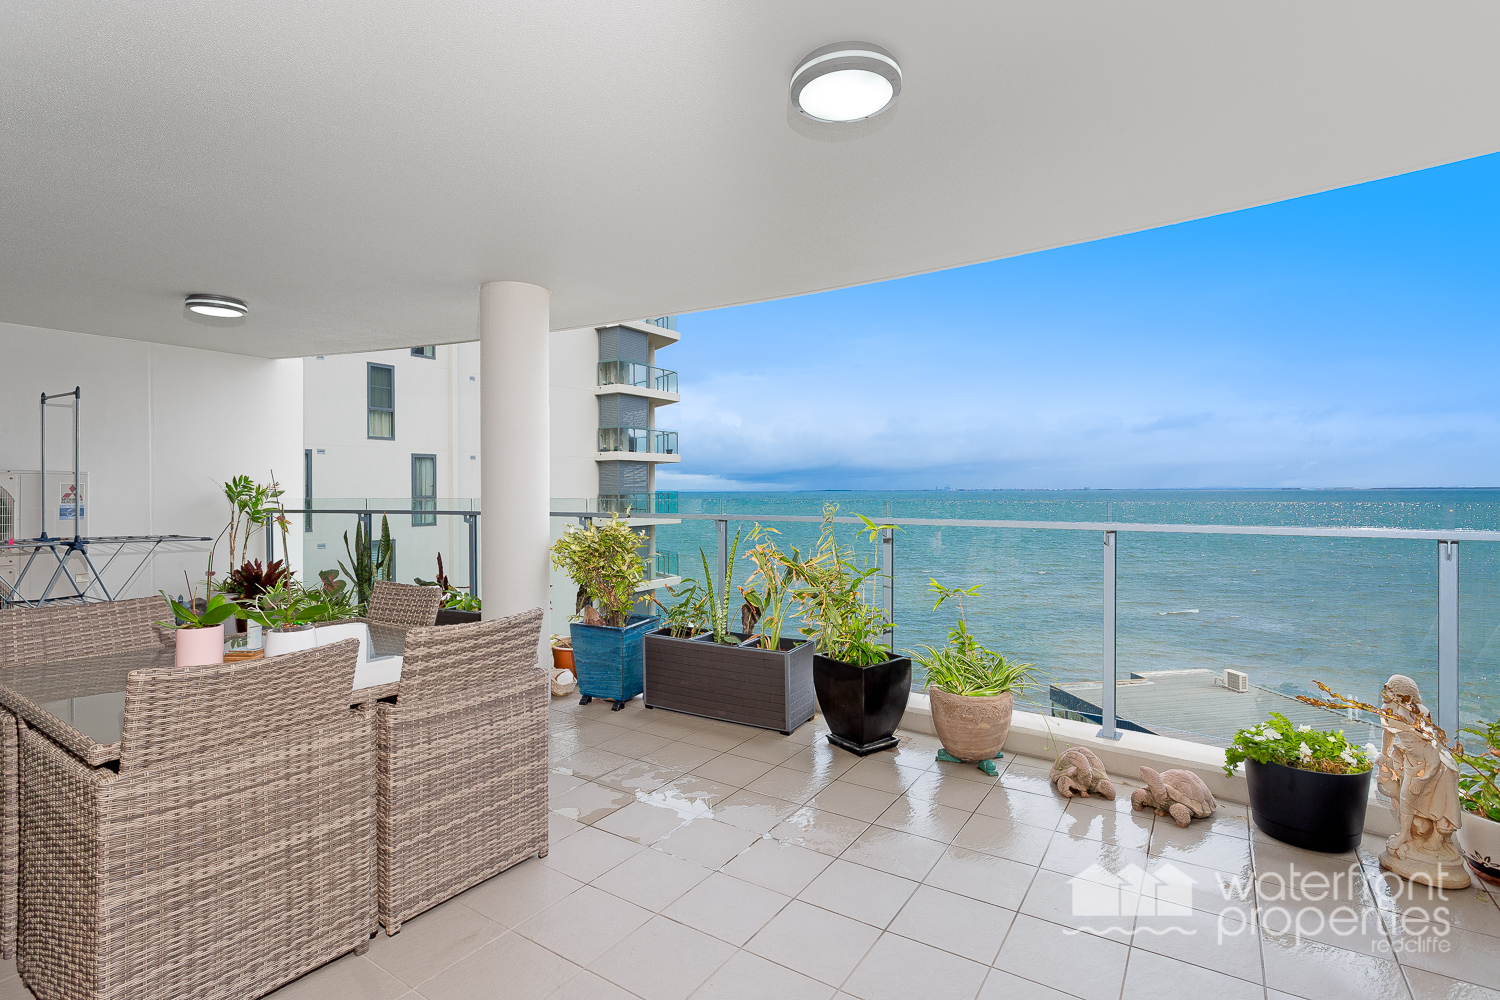 52/36 WOODCLIFFE CRESCENT, WOODY POINT  QLD  4019 11